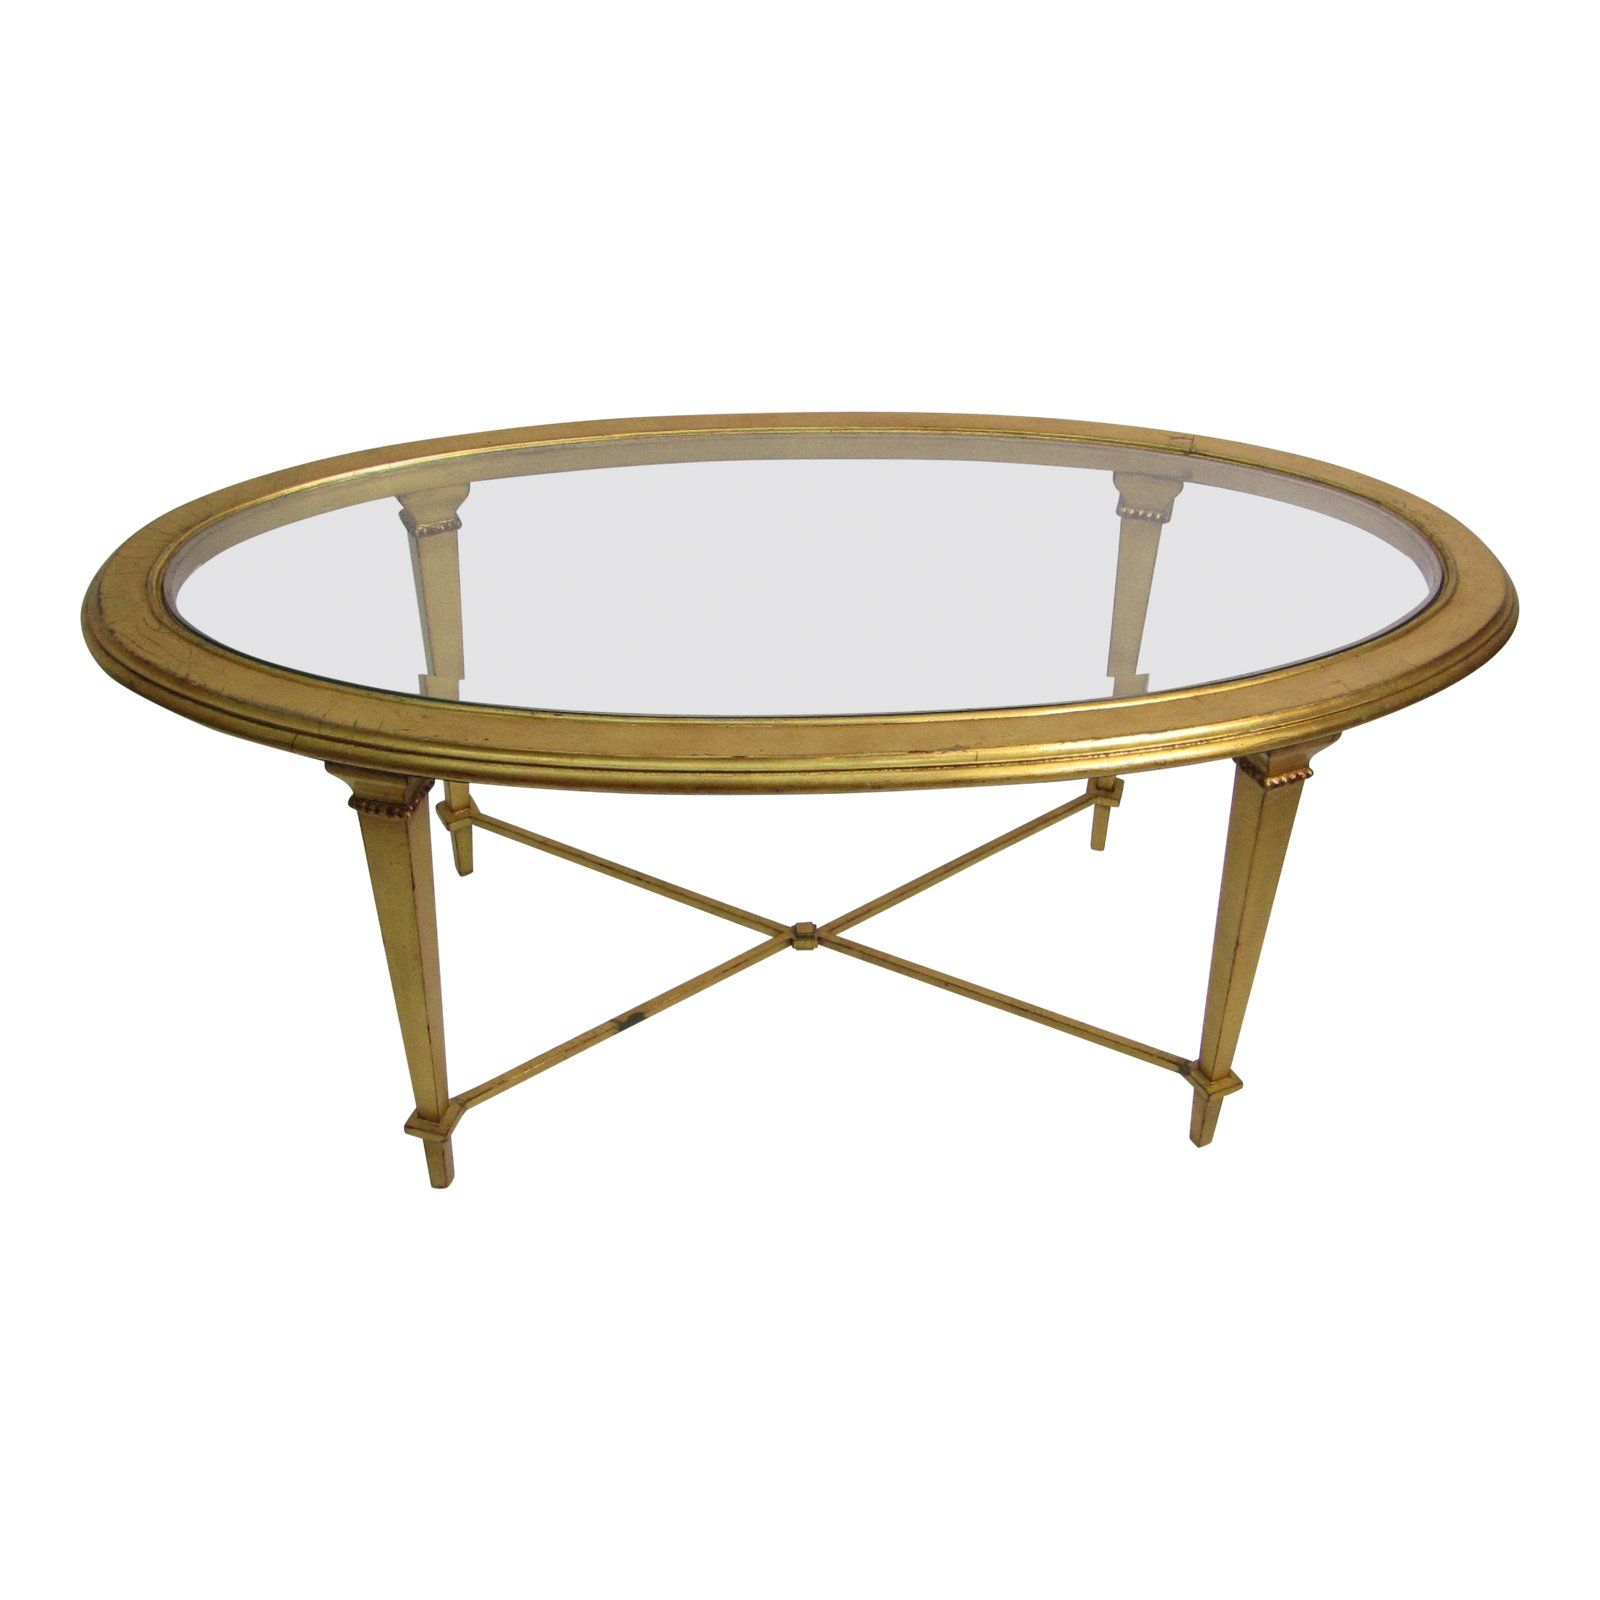 1960s Hollywood Regency Gold Oval Coffee Table